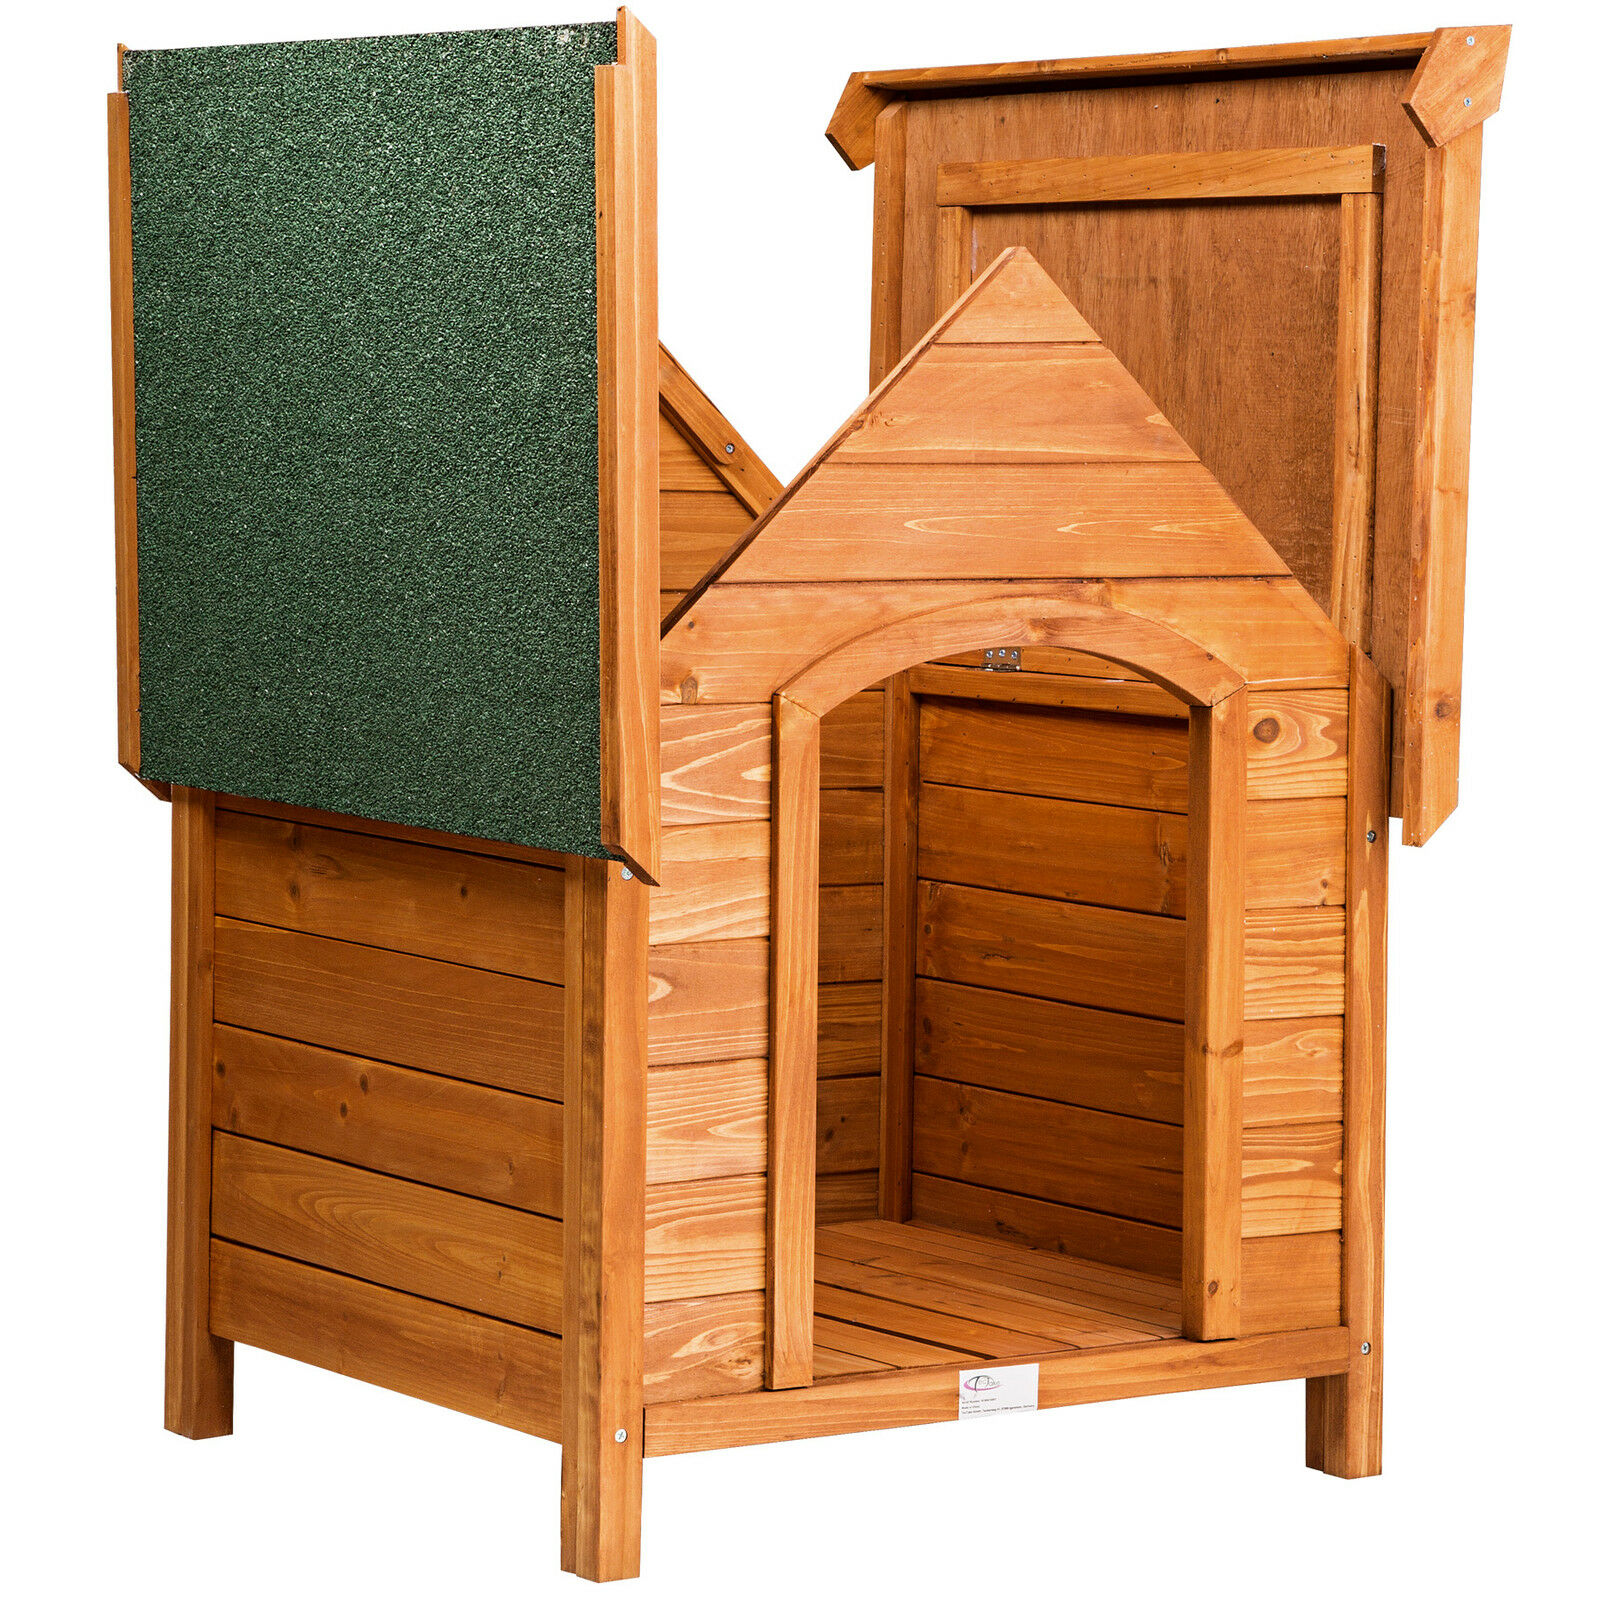 xxl hundeh tte massiv holz hundehaus wetterfest 83cm. Black Bedroom Furniture Sets. Home Design Ideas